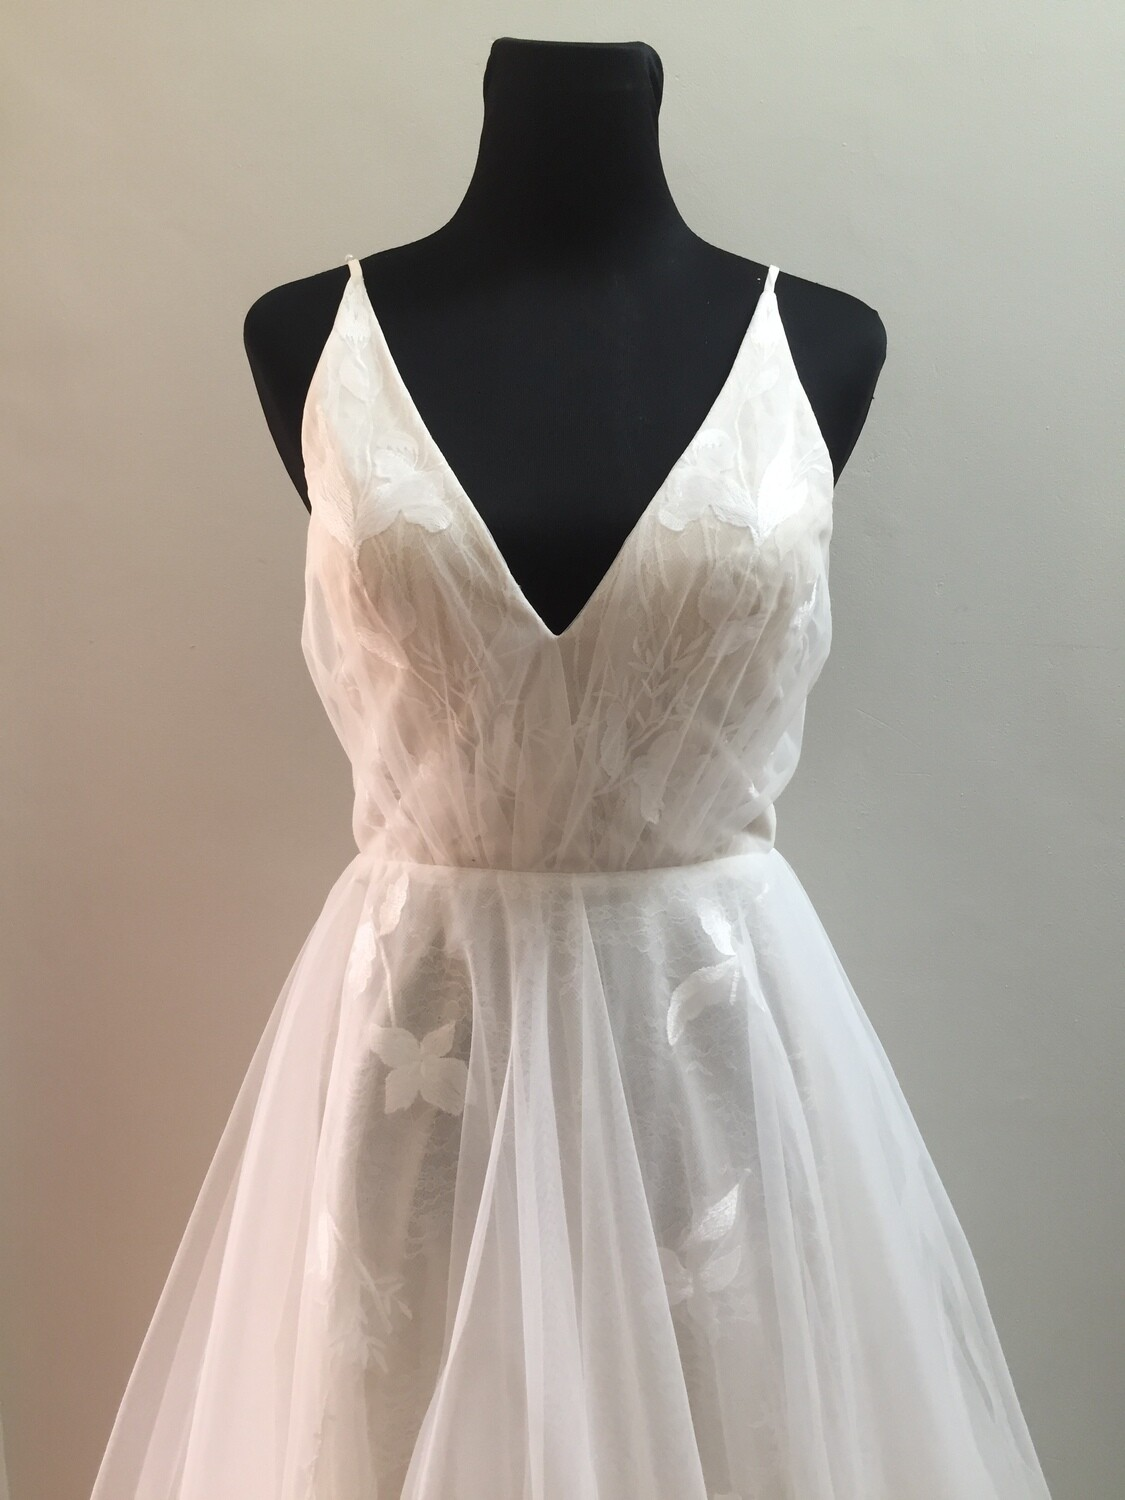 SAMPLE SALE - Delphine wedding gown - size 10